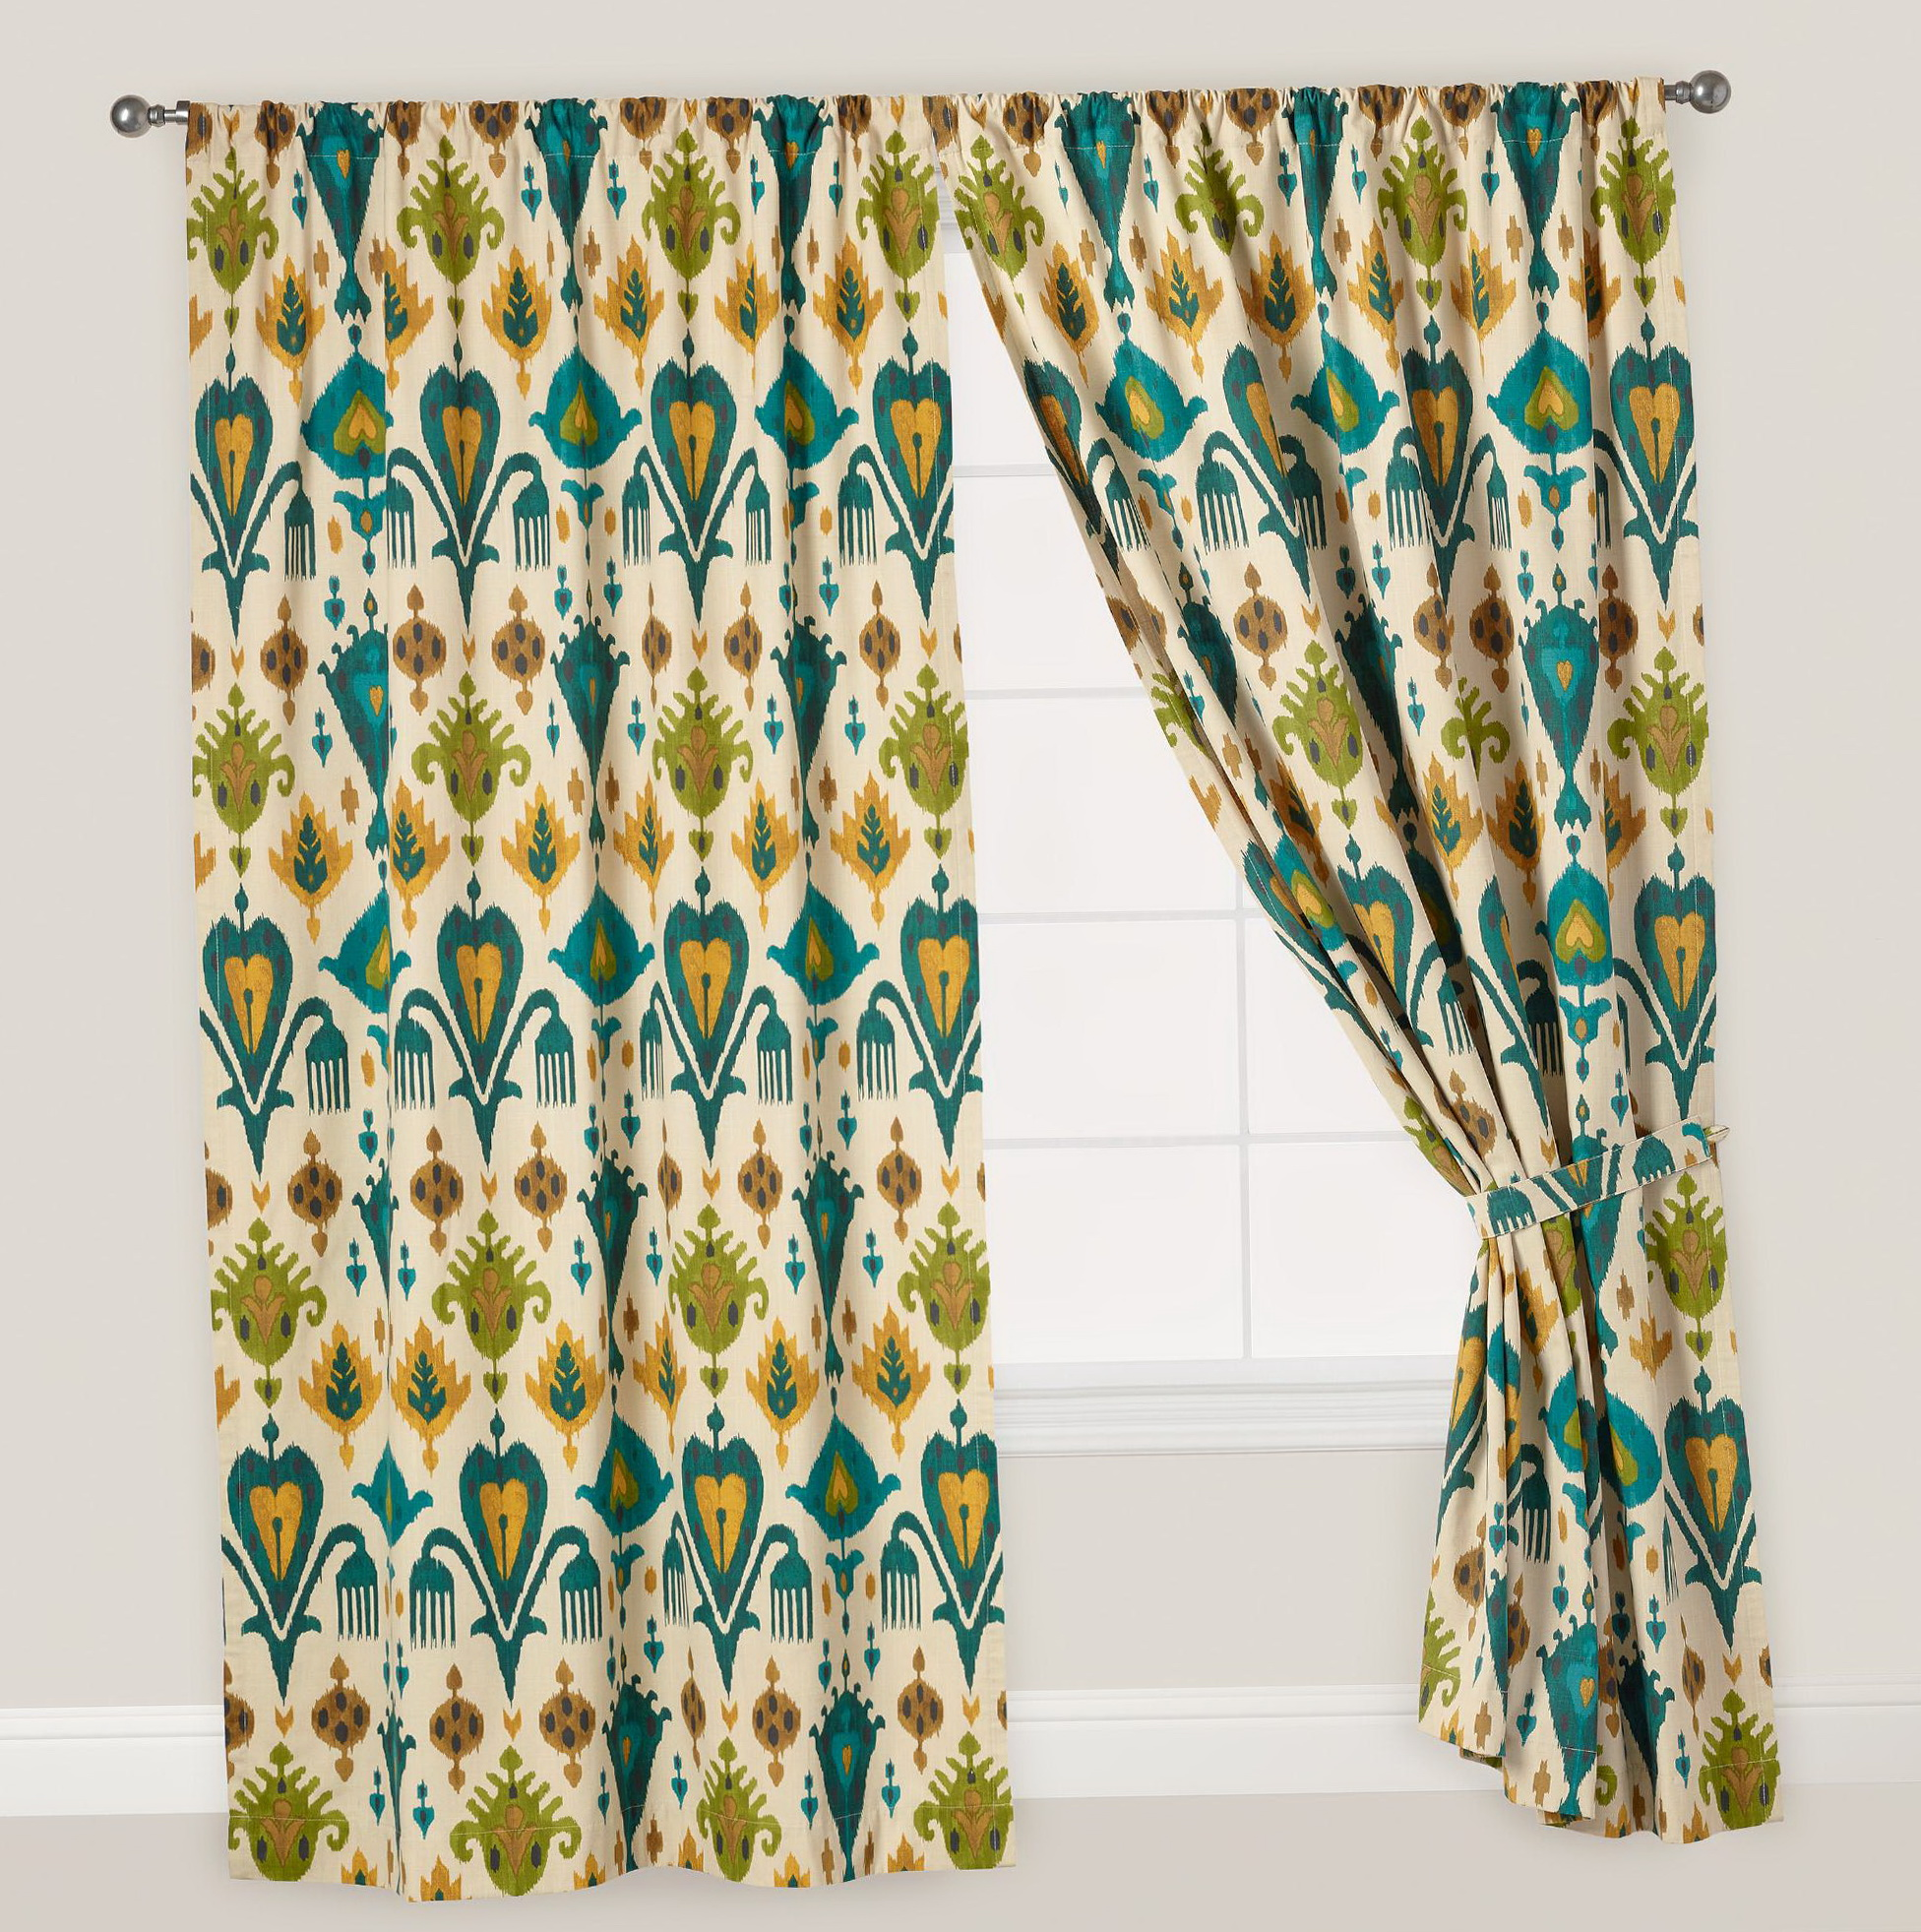 Gray Teal And Yellow Curtains Home Design Ideas